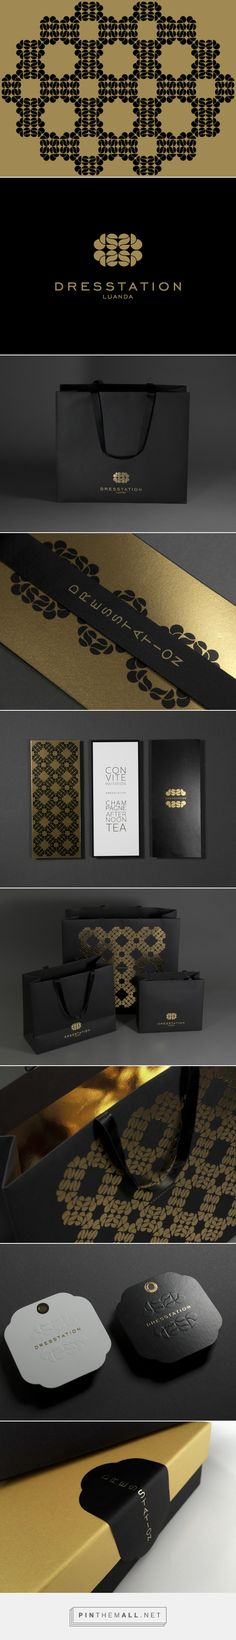 Dresstation Luanda branding packaging ID on Packaging Design Served curated by Packaging Diva PD. This is gorgeous packaging for a luxury brand in Luanda, Angola.